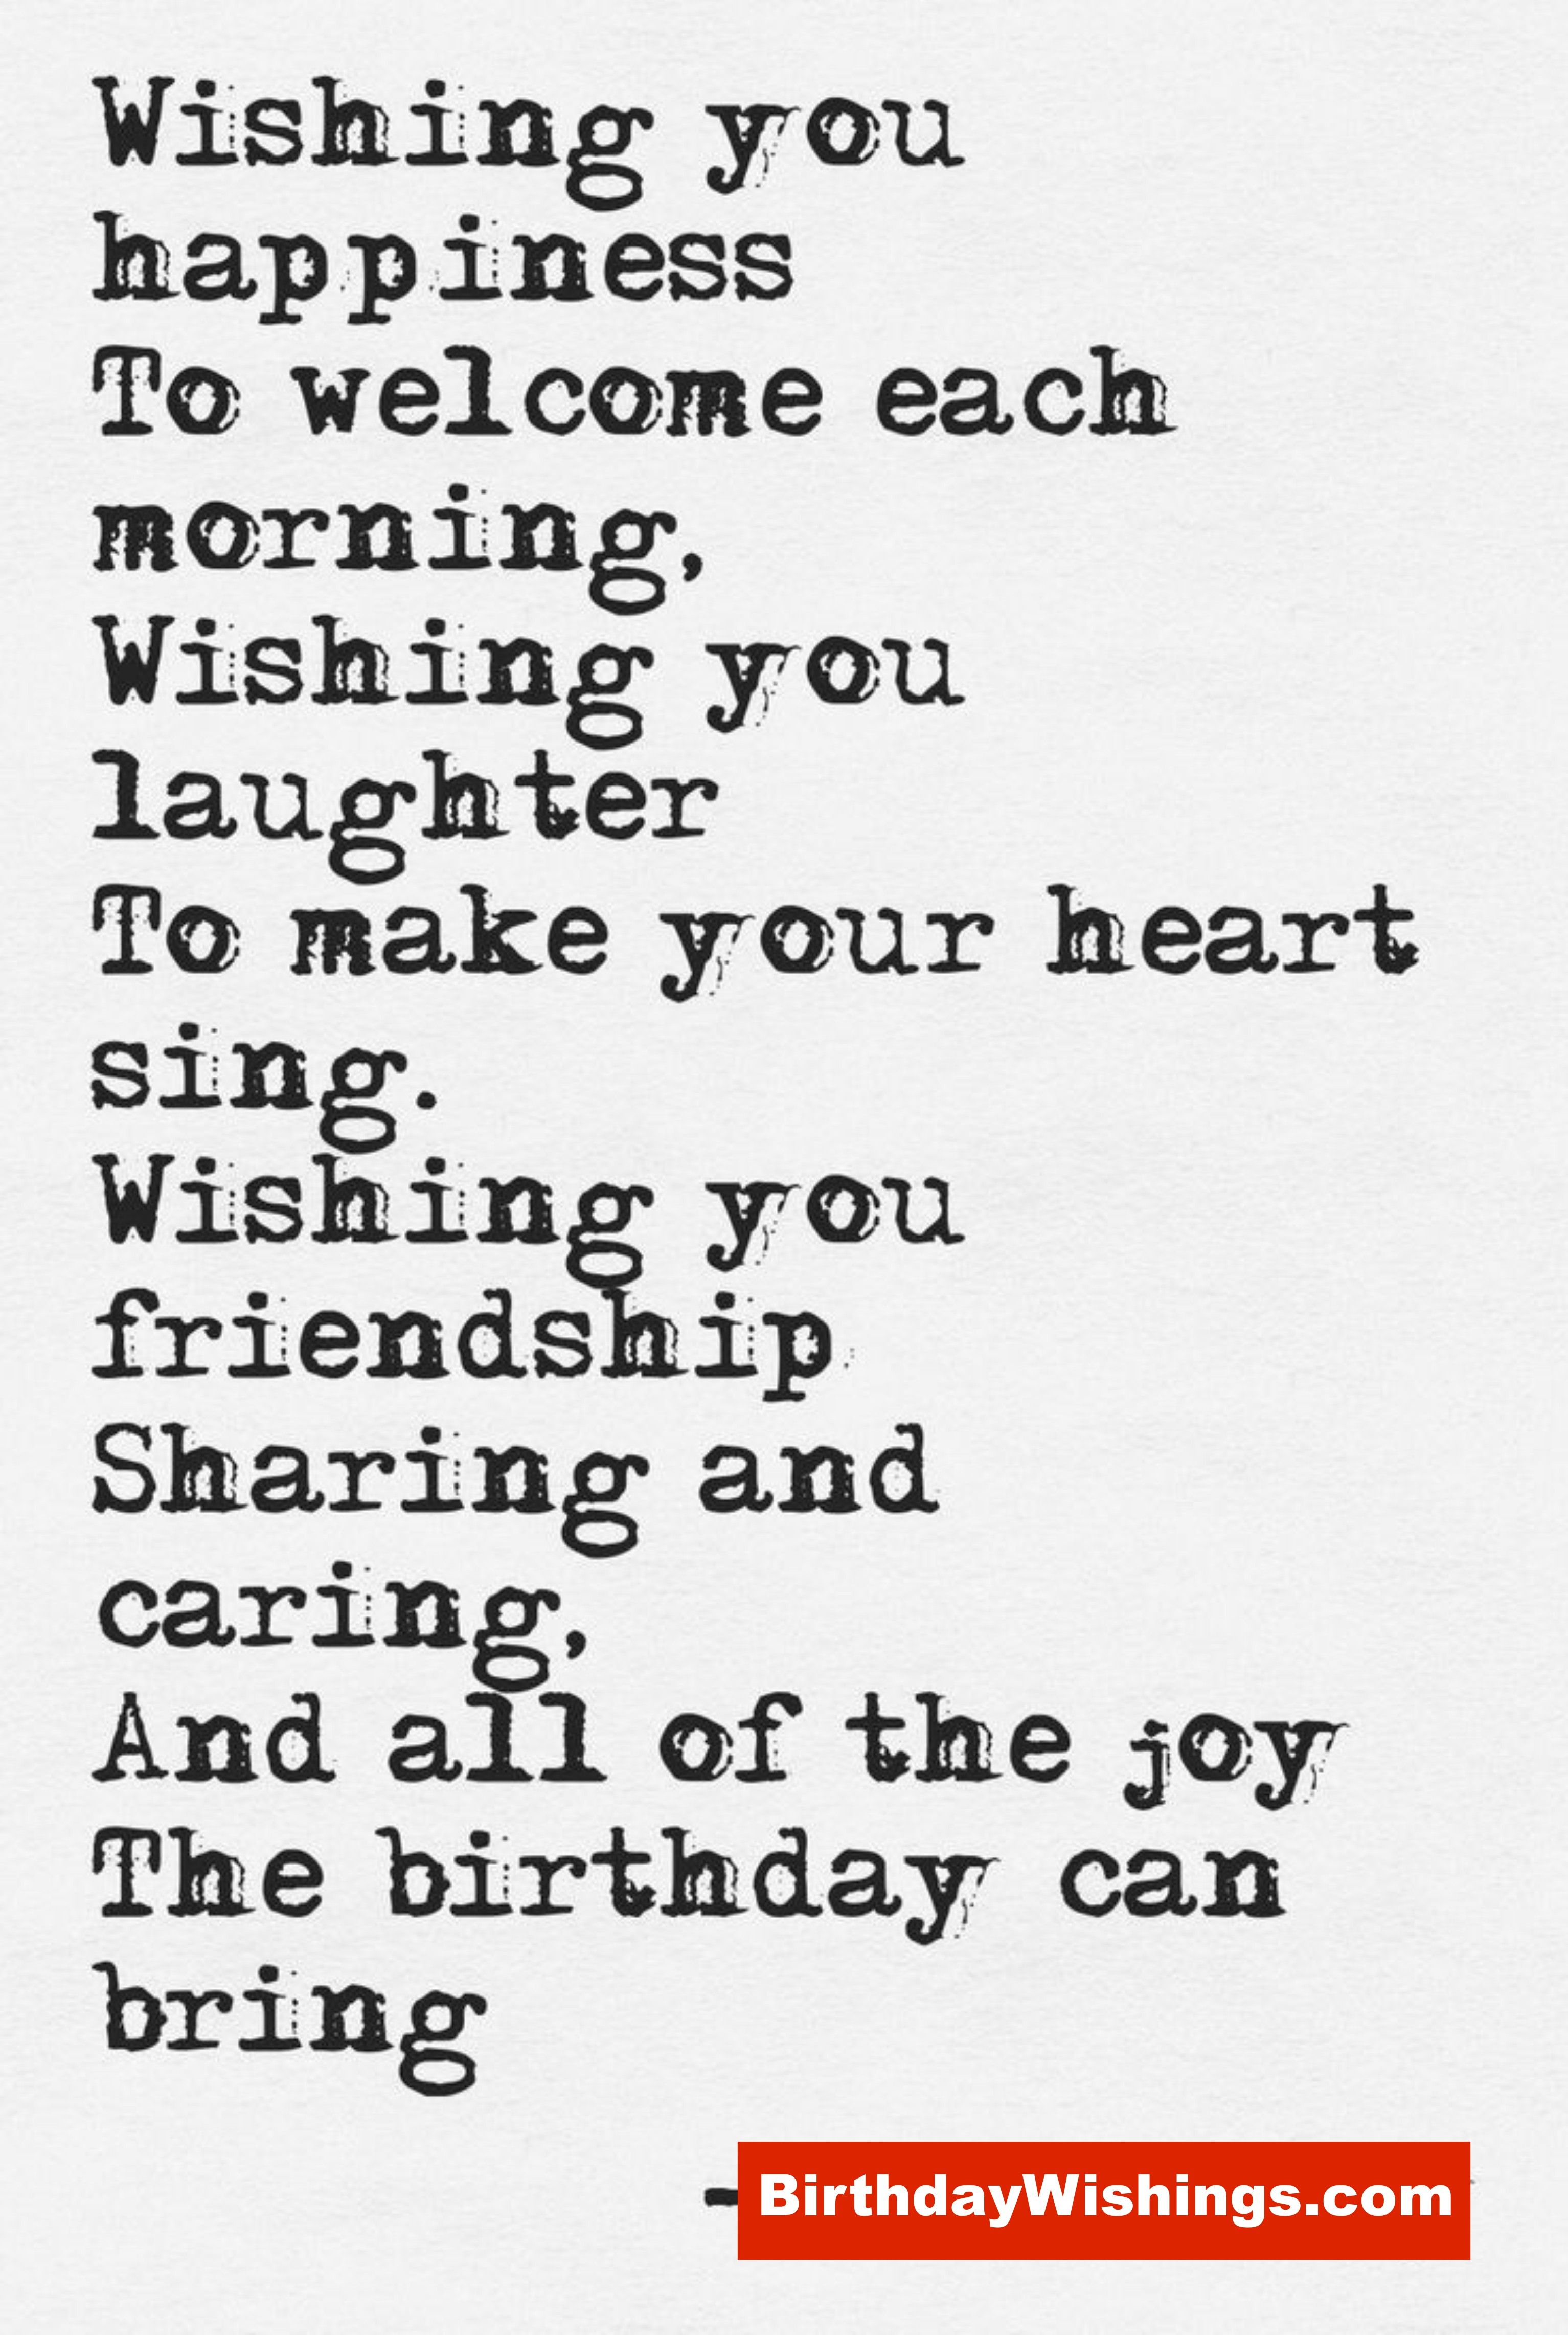 Birthday Wishes For Best Friend Wishing You Happiness To Welcome E Happy Birthday Quotes For Friends Happy Birthday Quotes Funny Happy Birthday Wishes Quotes